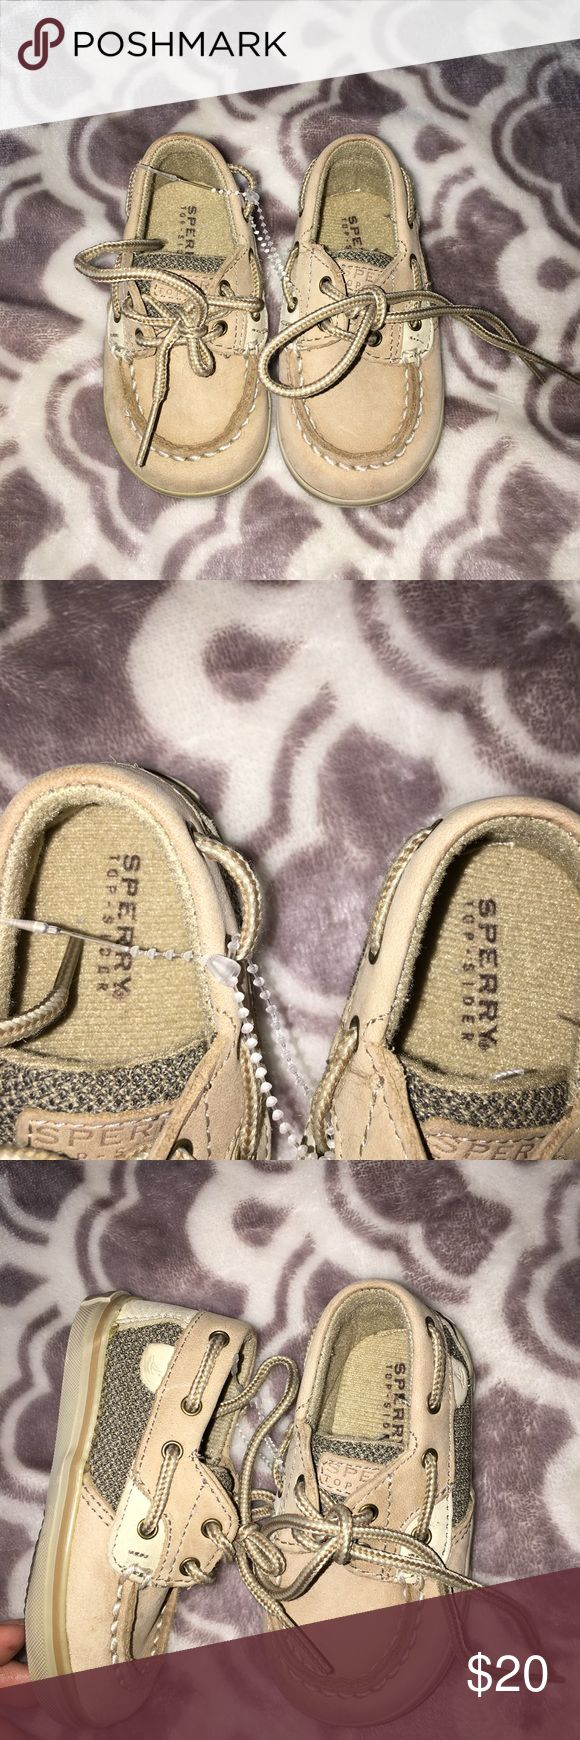 NWOT Sperrys! adorable little baby sperrys! these are new just without the tags and have never been worn! they are still attached with the little tie! They do have some markings on the bottom of one of the shoes but can be easily cleaned with a little tlc , but it's not noticeable when wearing at all!! no other flaws!💜🌺 Sperry Top-Sider Shoes Baby & Walker